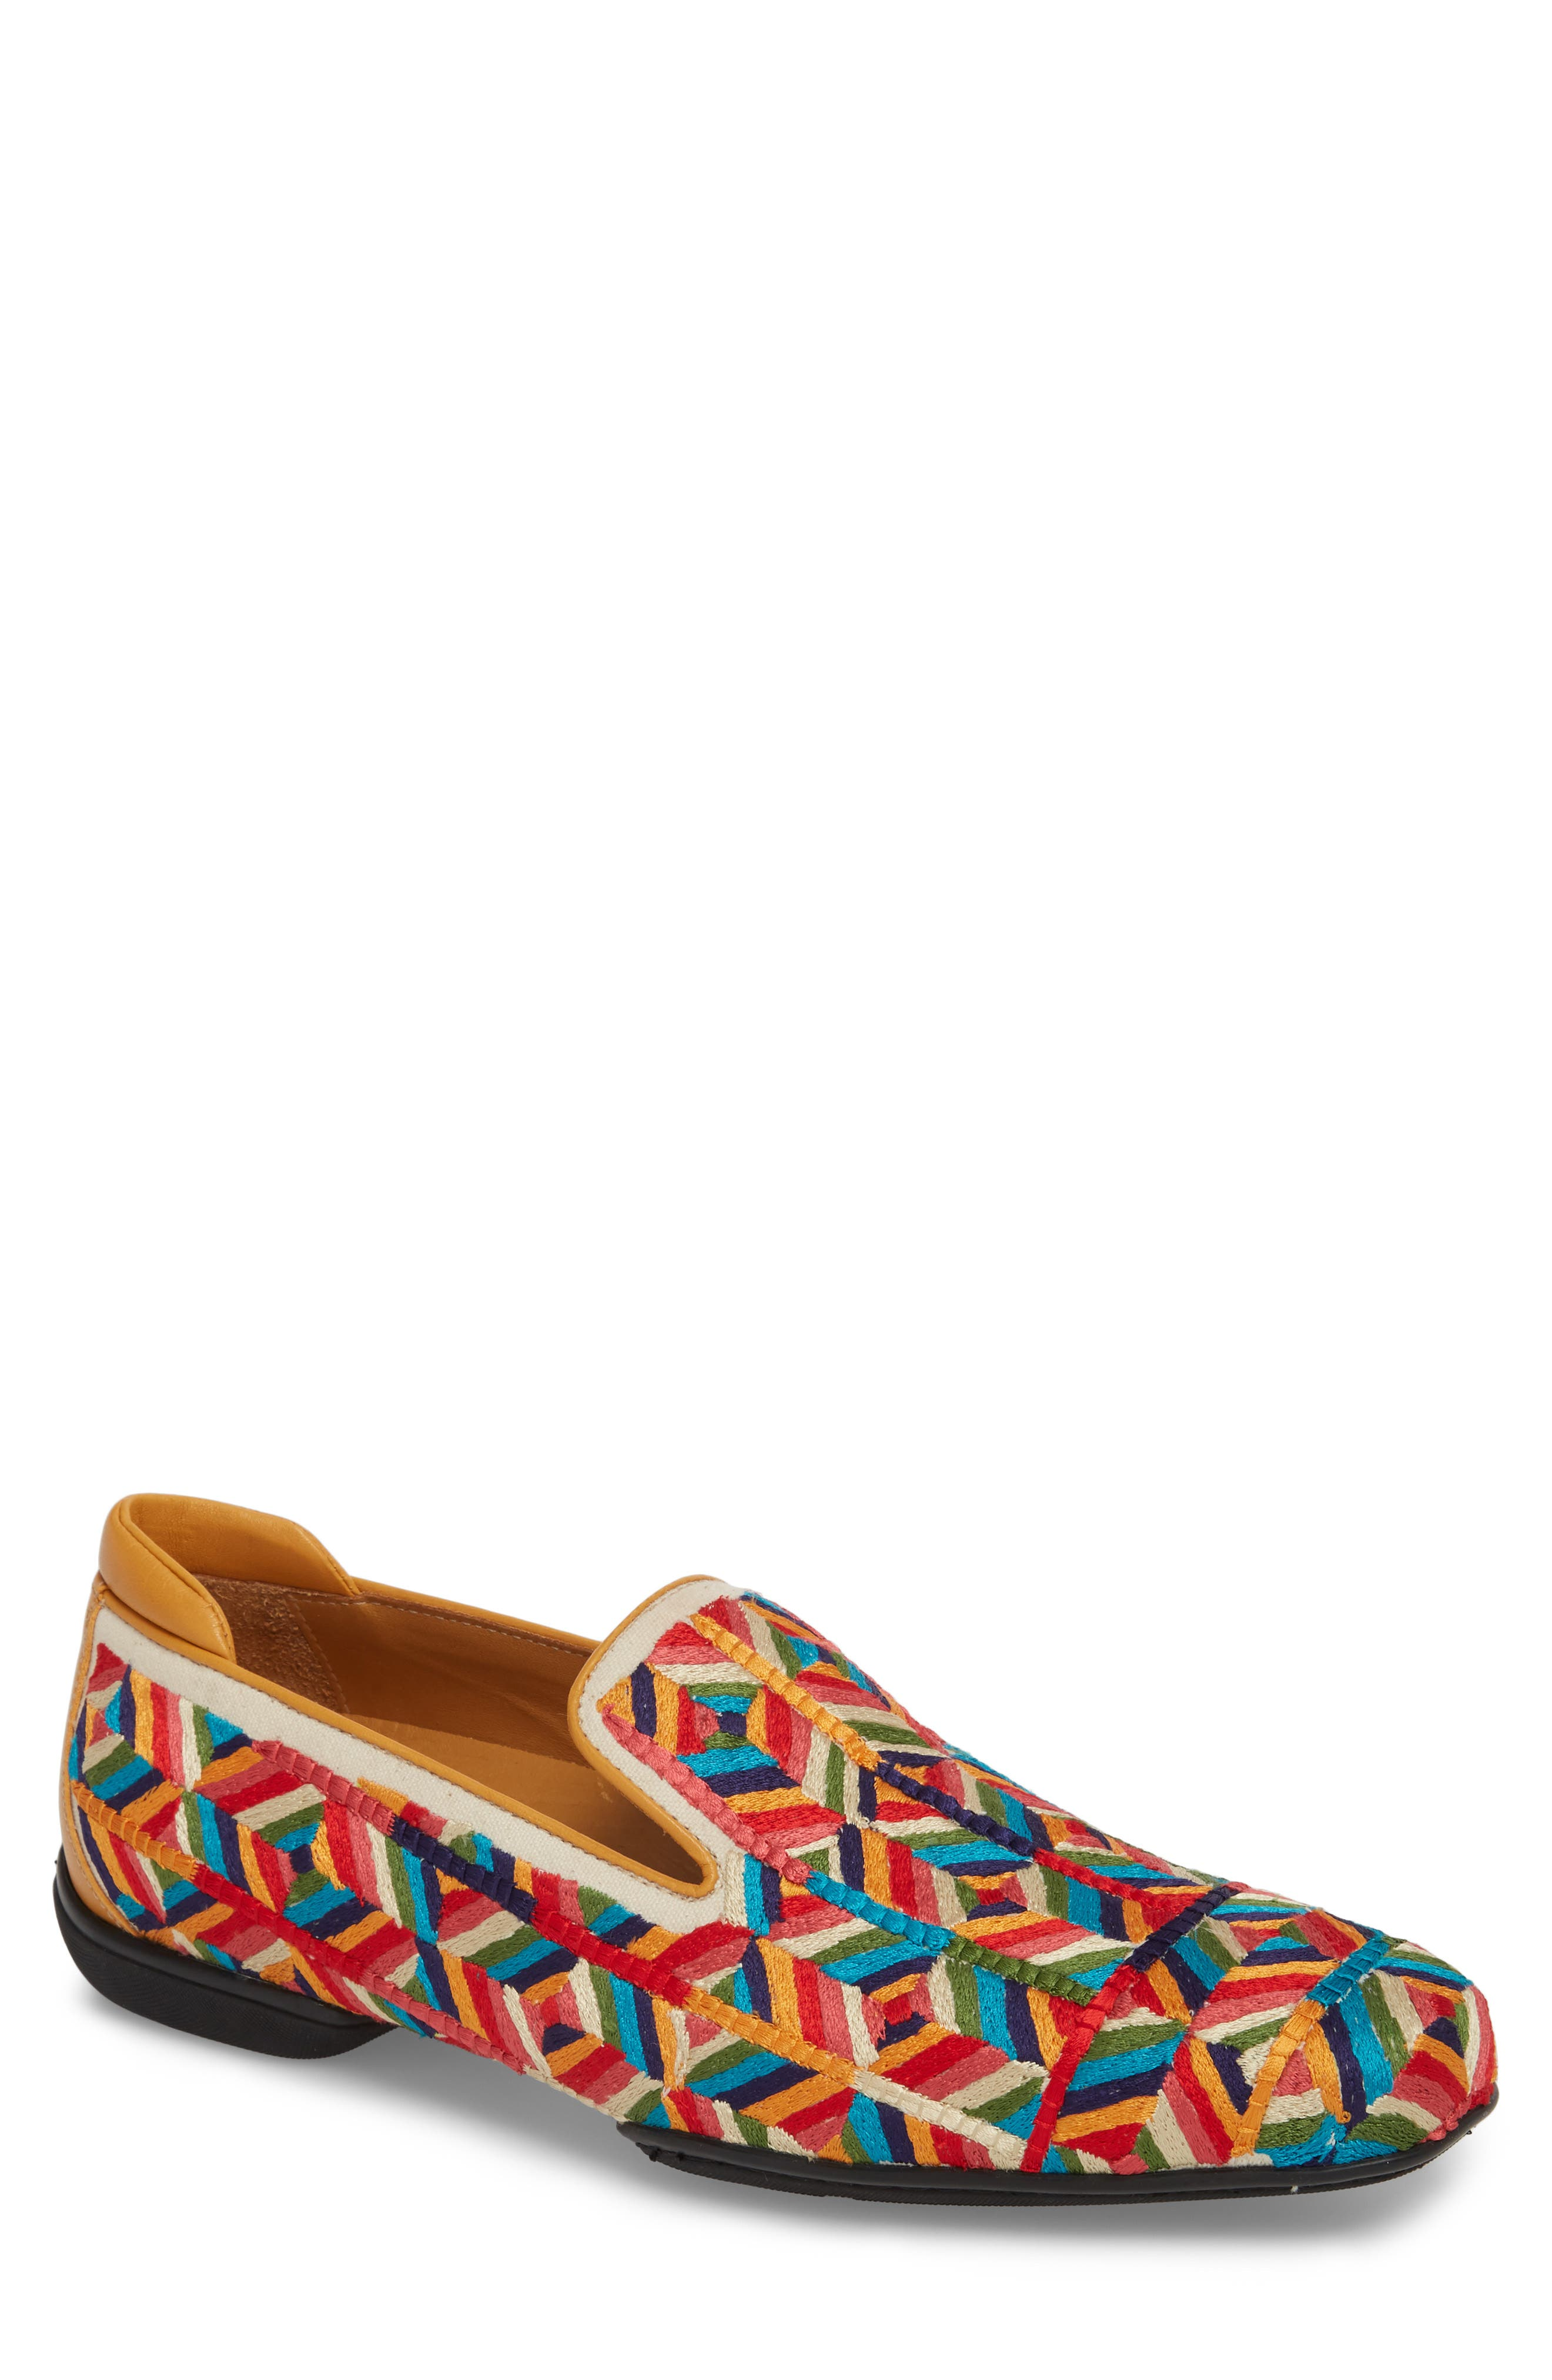 Verge Venetian Loafer,                             Main thumbnail 1, color,                             Yellow Fabric